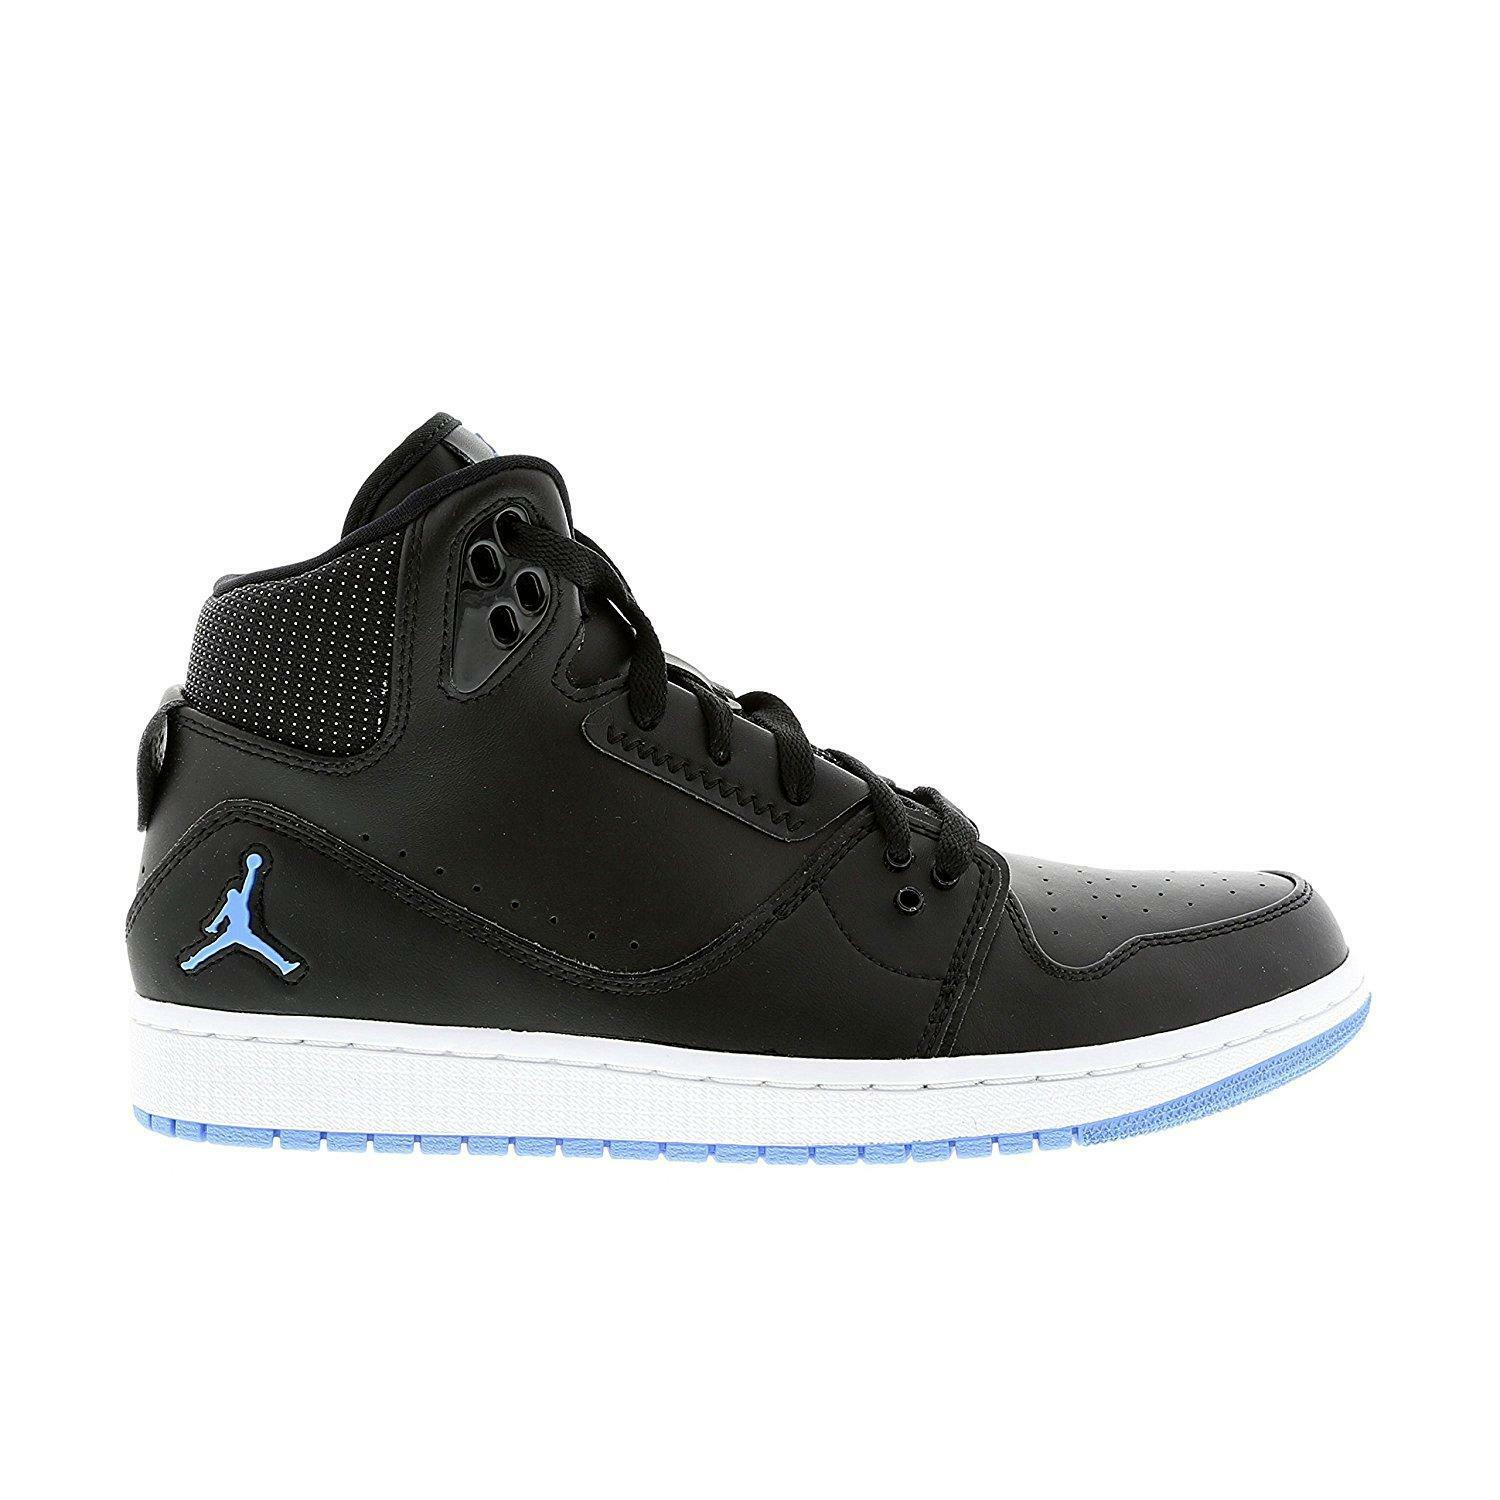 The most popular shoes for men and women Mens Nike Air Jordan 1 Flight 2 555798 042 Black Basketball Trainers